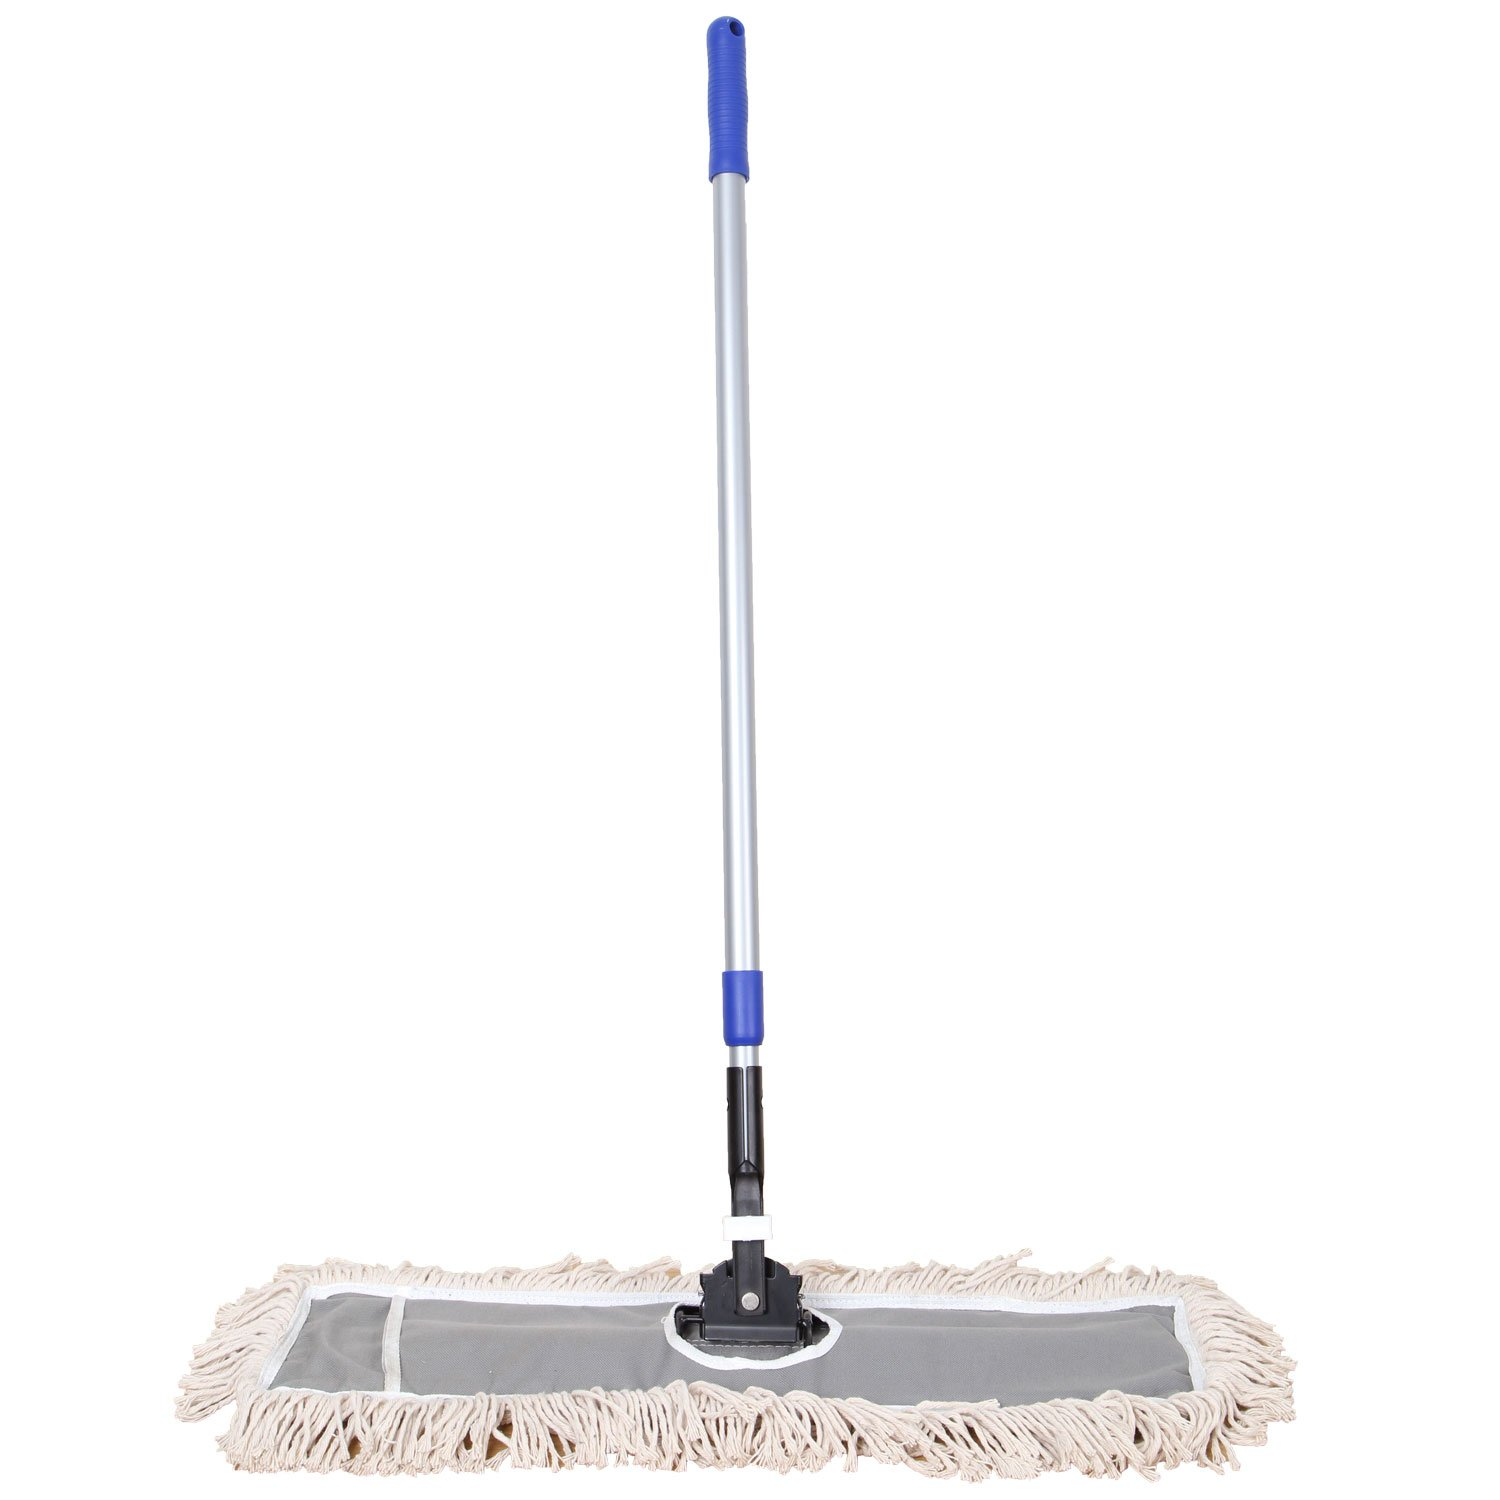 JINCLEAN™ 24'' Industrial Class Cotton Floor Mop | Dry to Attract dirt, dust Or Hardwood Floor Clean, Office, Garage Care, Telescopic Pole Height Max 59'' (24'' x 11'' Cleaning Path Industrial Mop)